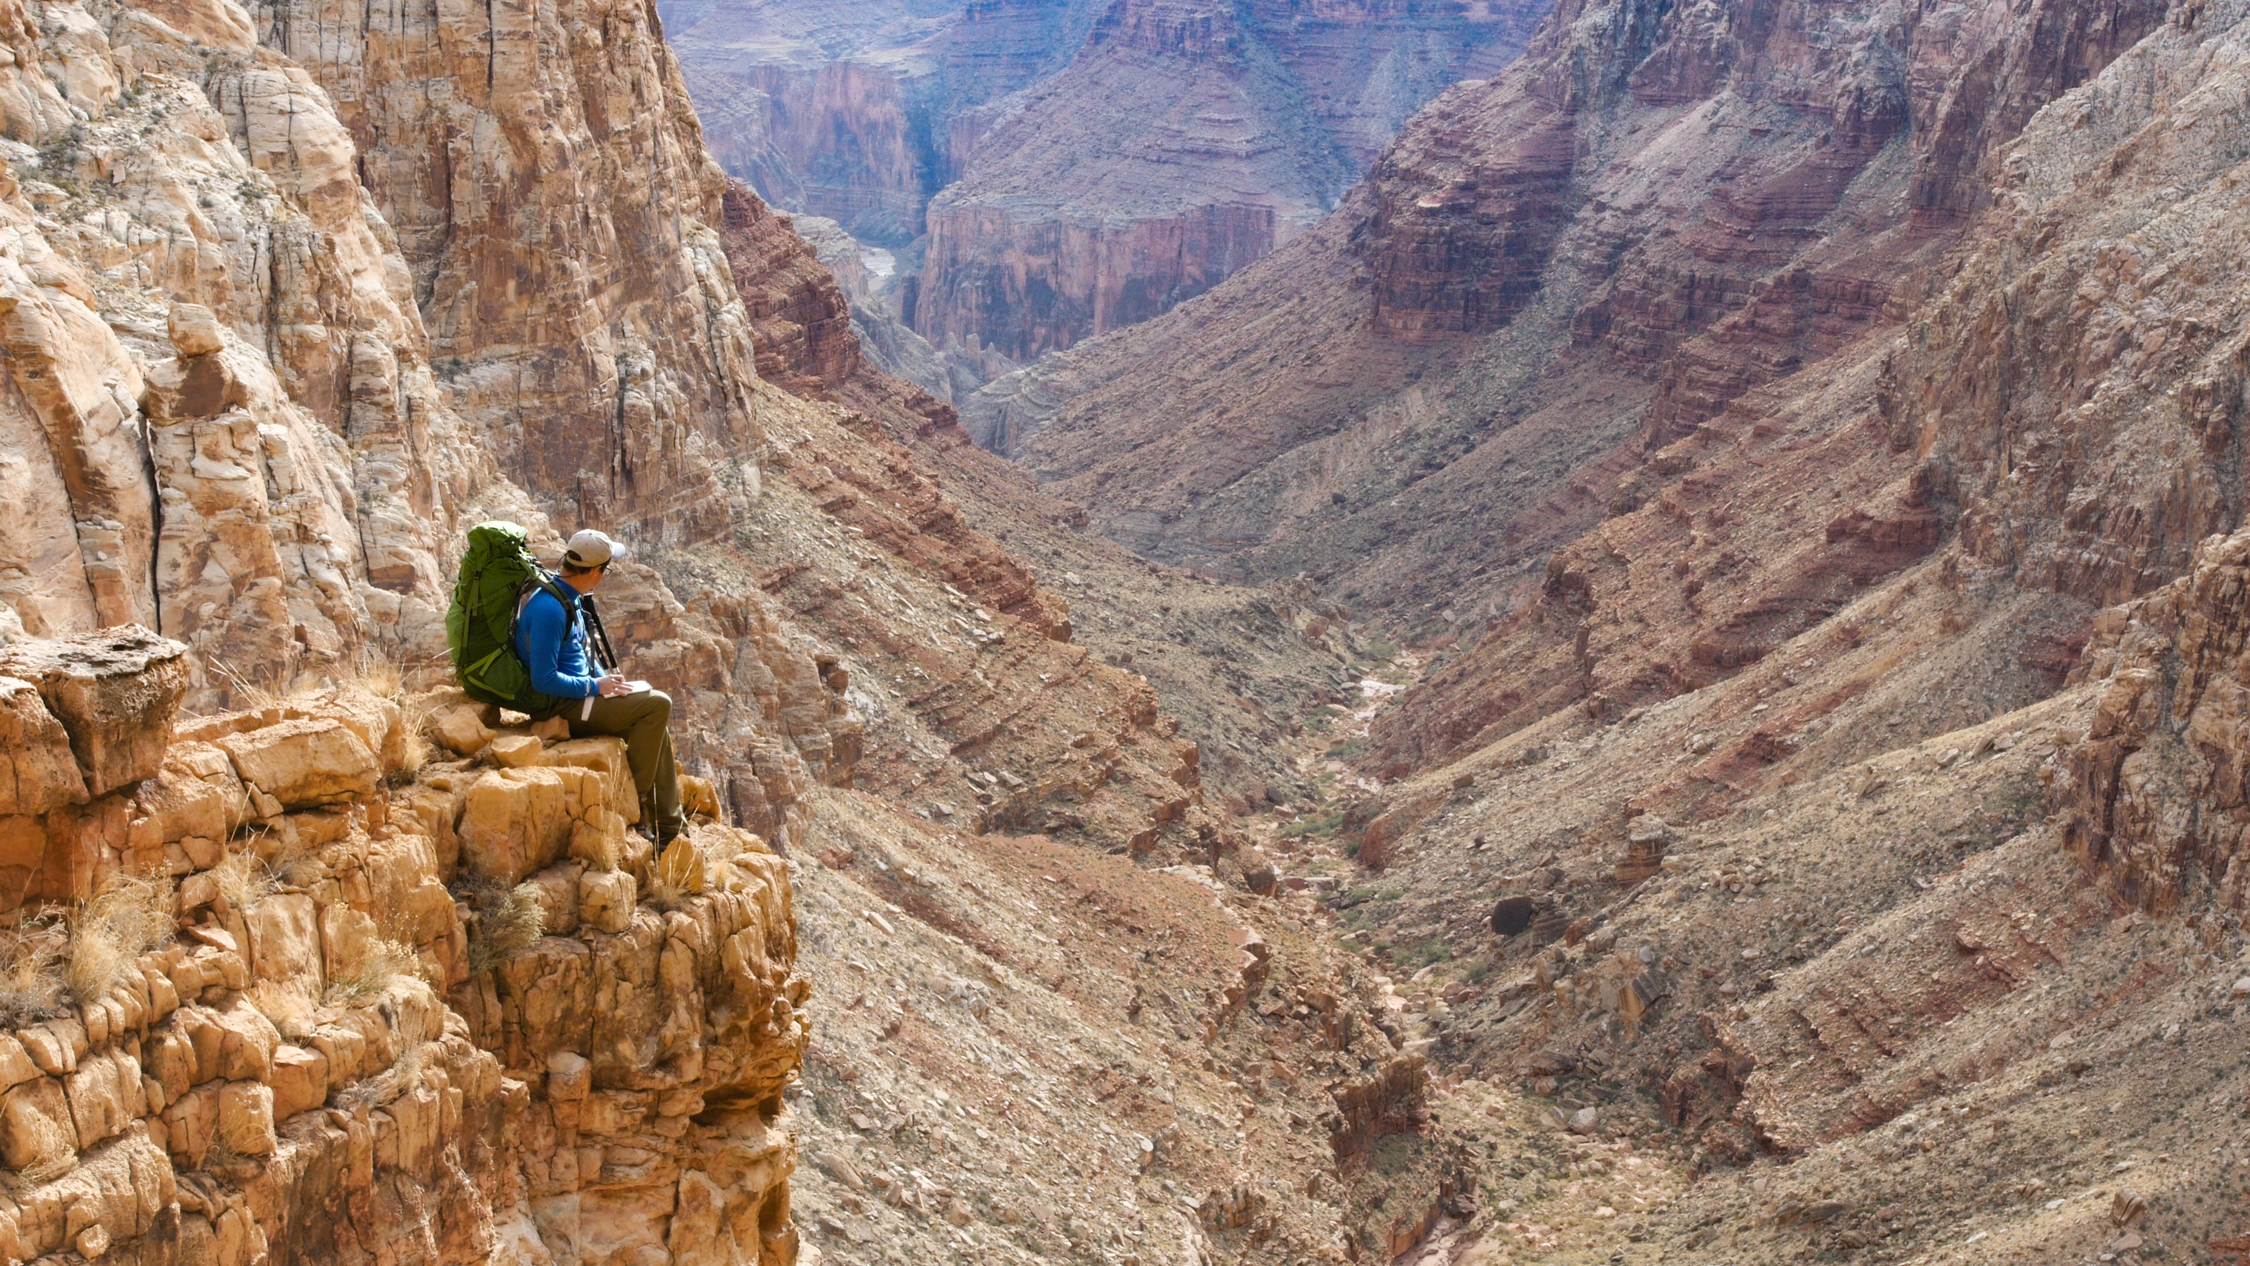 Author Kevin Fedarko On Why A Grand Canyon Thru Hike Matters